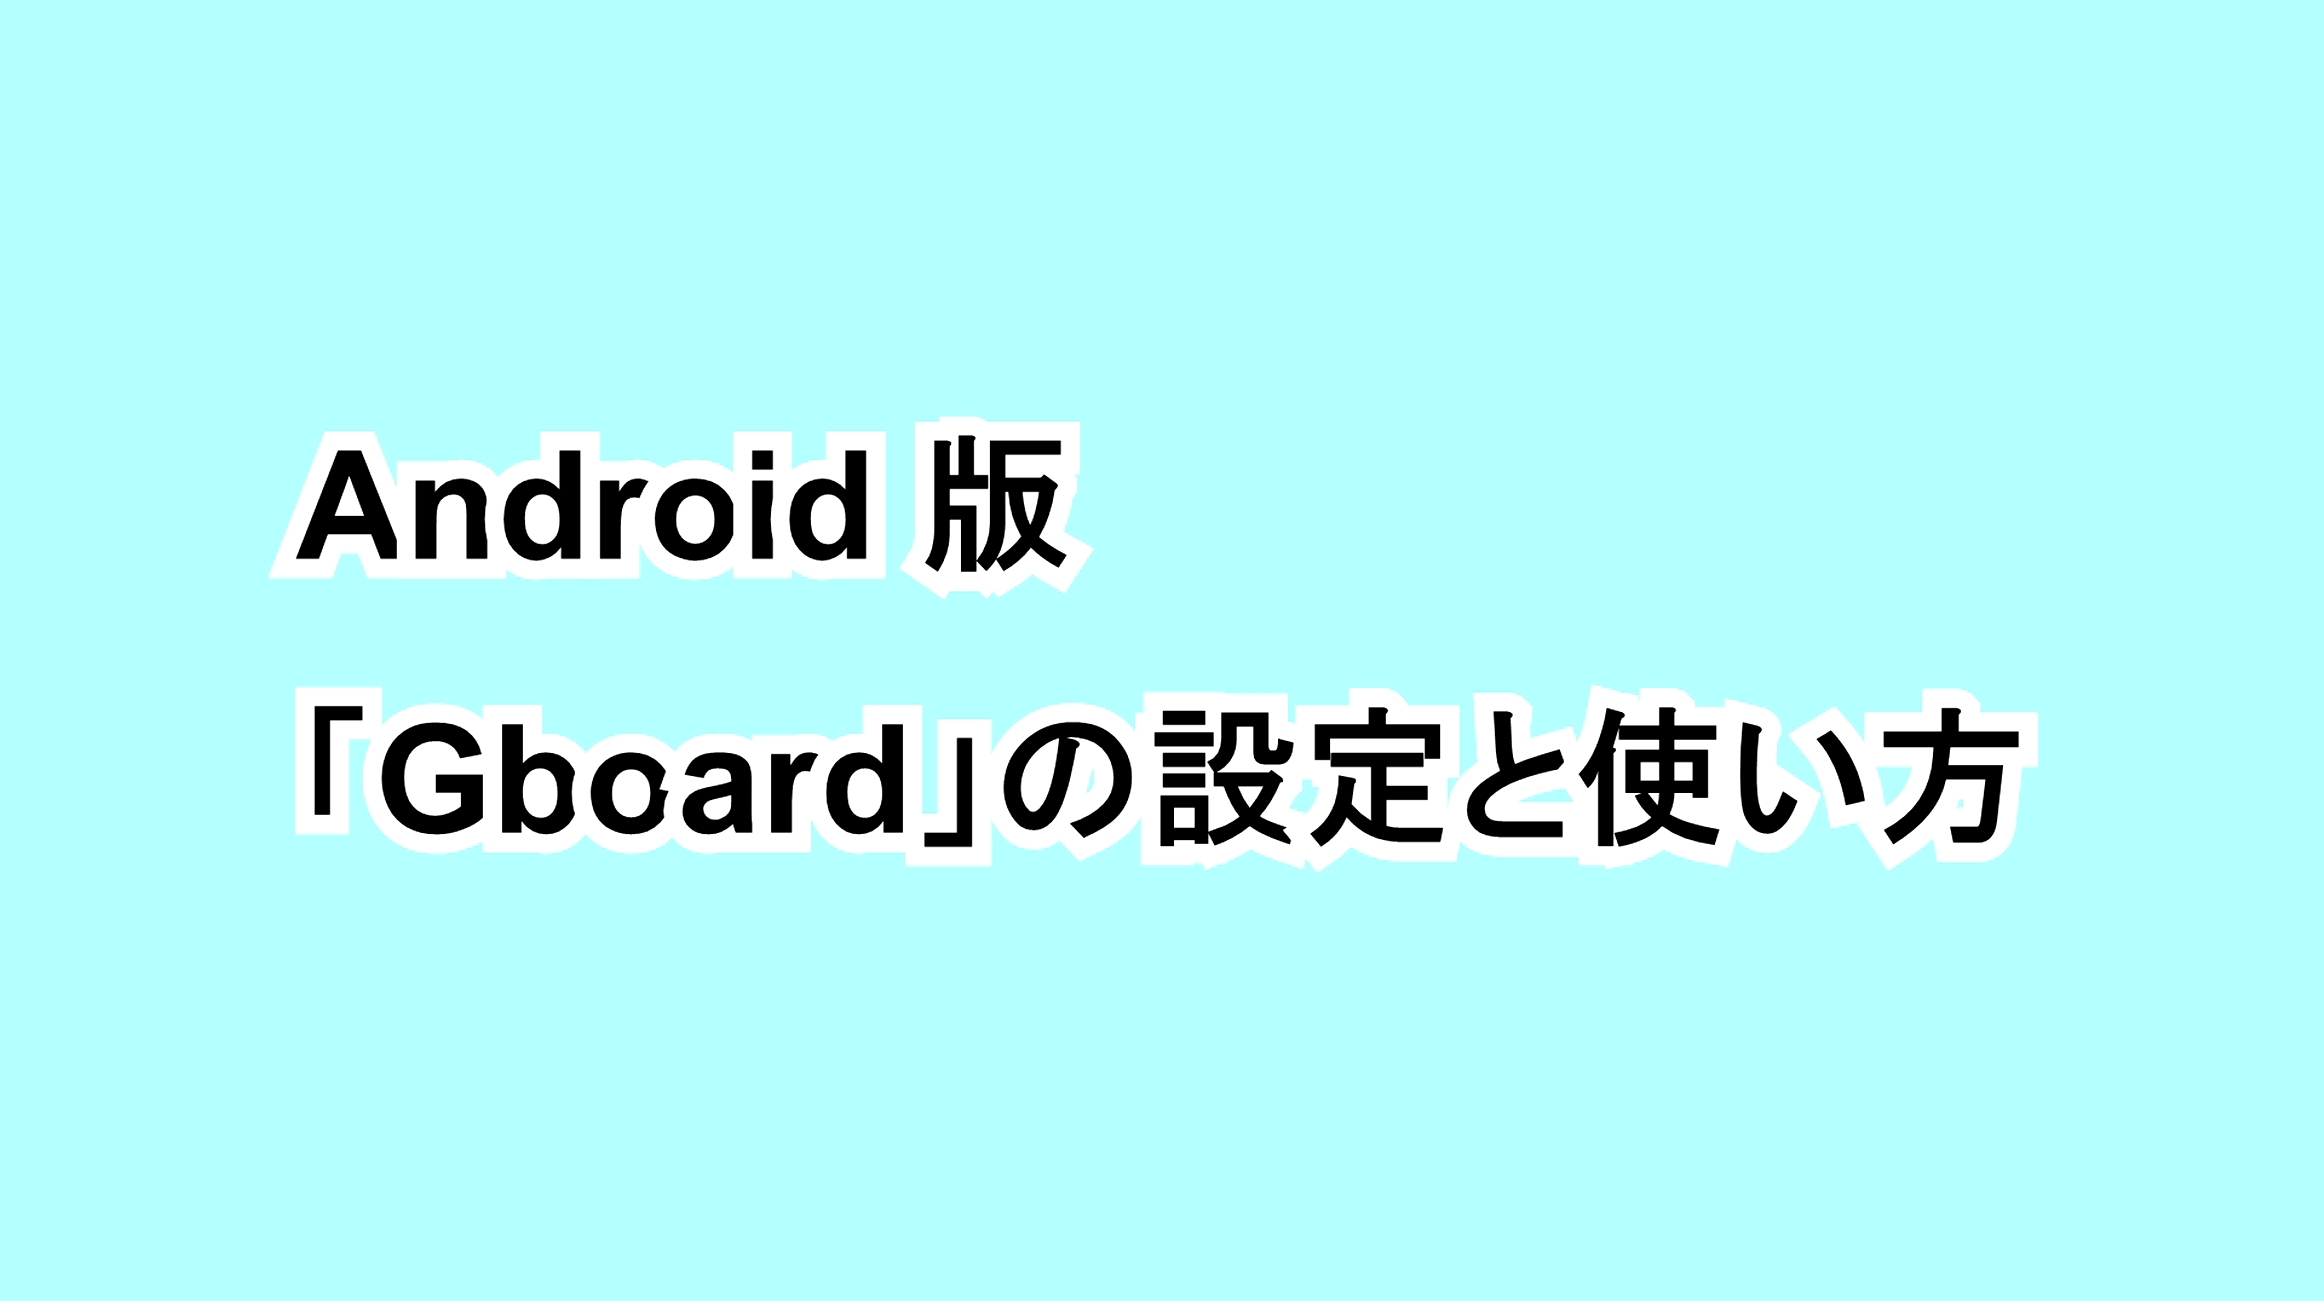 Android版「Gboard」の設定と使い方